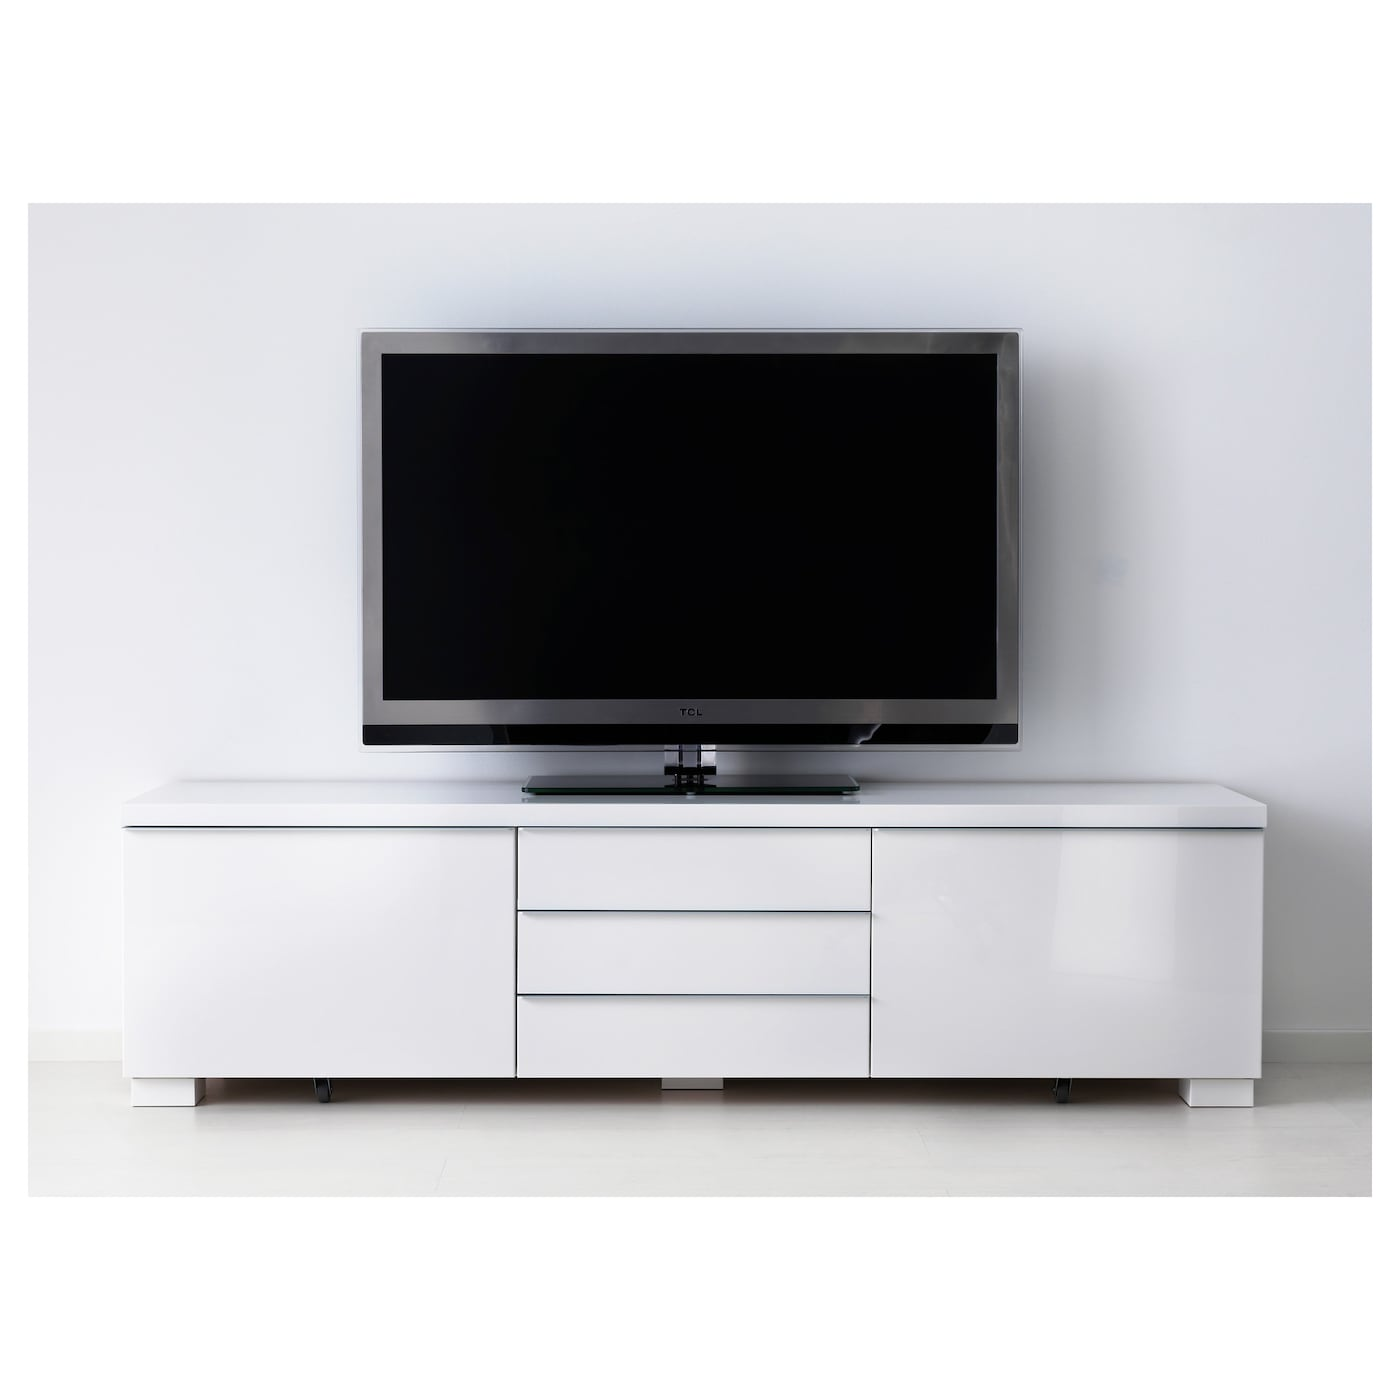 Meuble Tv Grande Capacite De Rangement - Best Burs Banc Tv Brillant Blanc 180×41 Cm Ikea[mjhdah]https://www.brindouest.com/wp-content/uploads/2015/11/Meuble-tv-design-en-bois.jpg